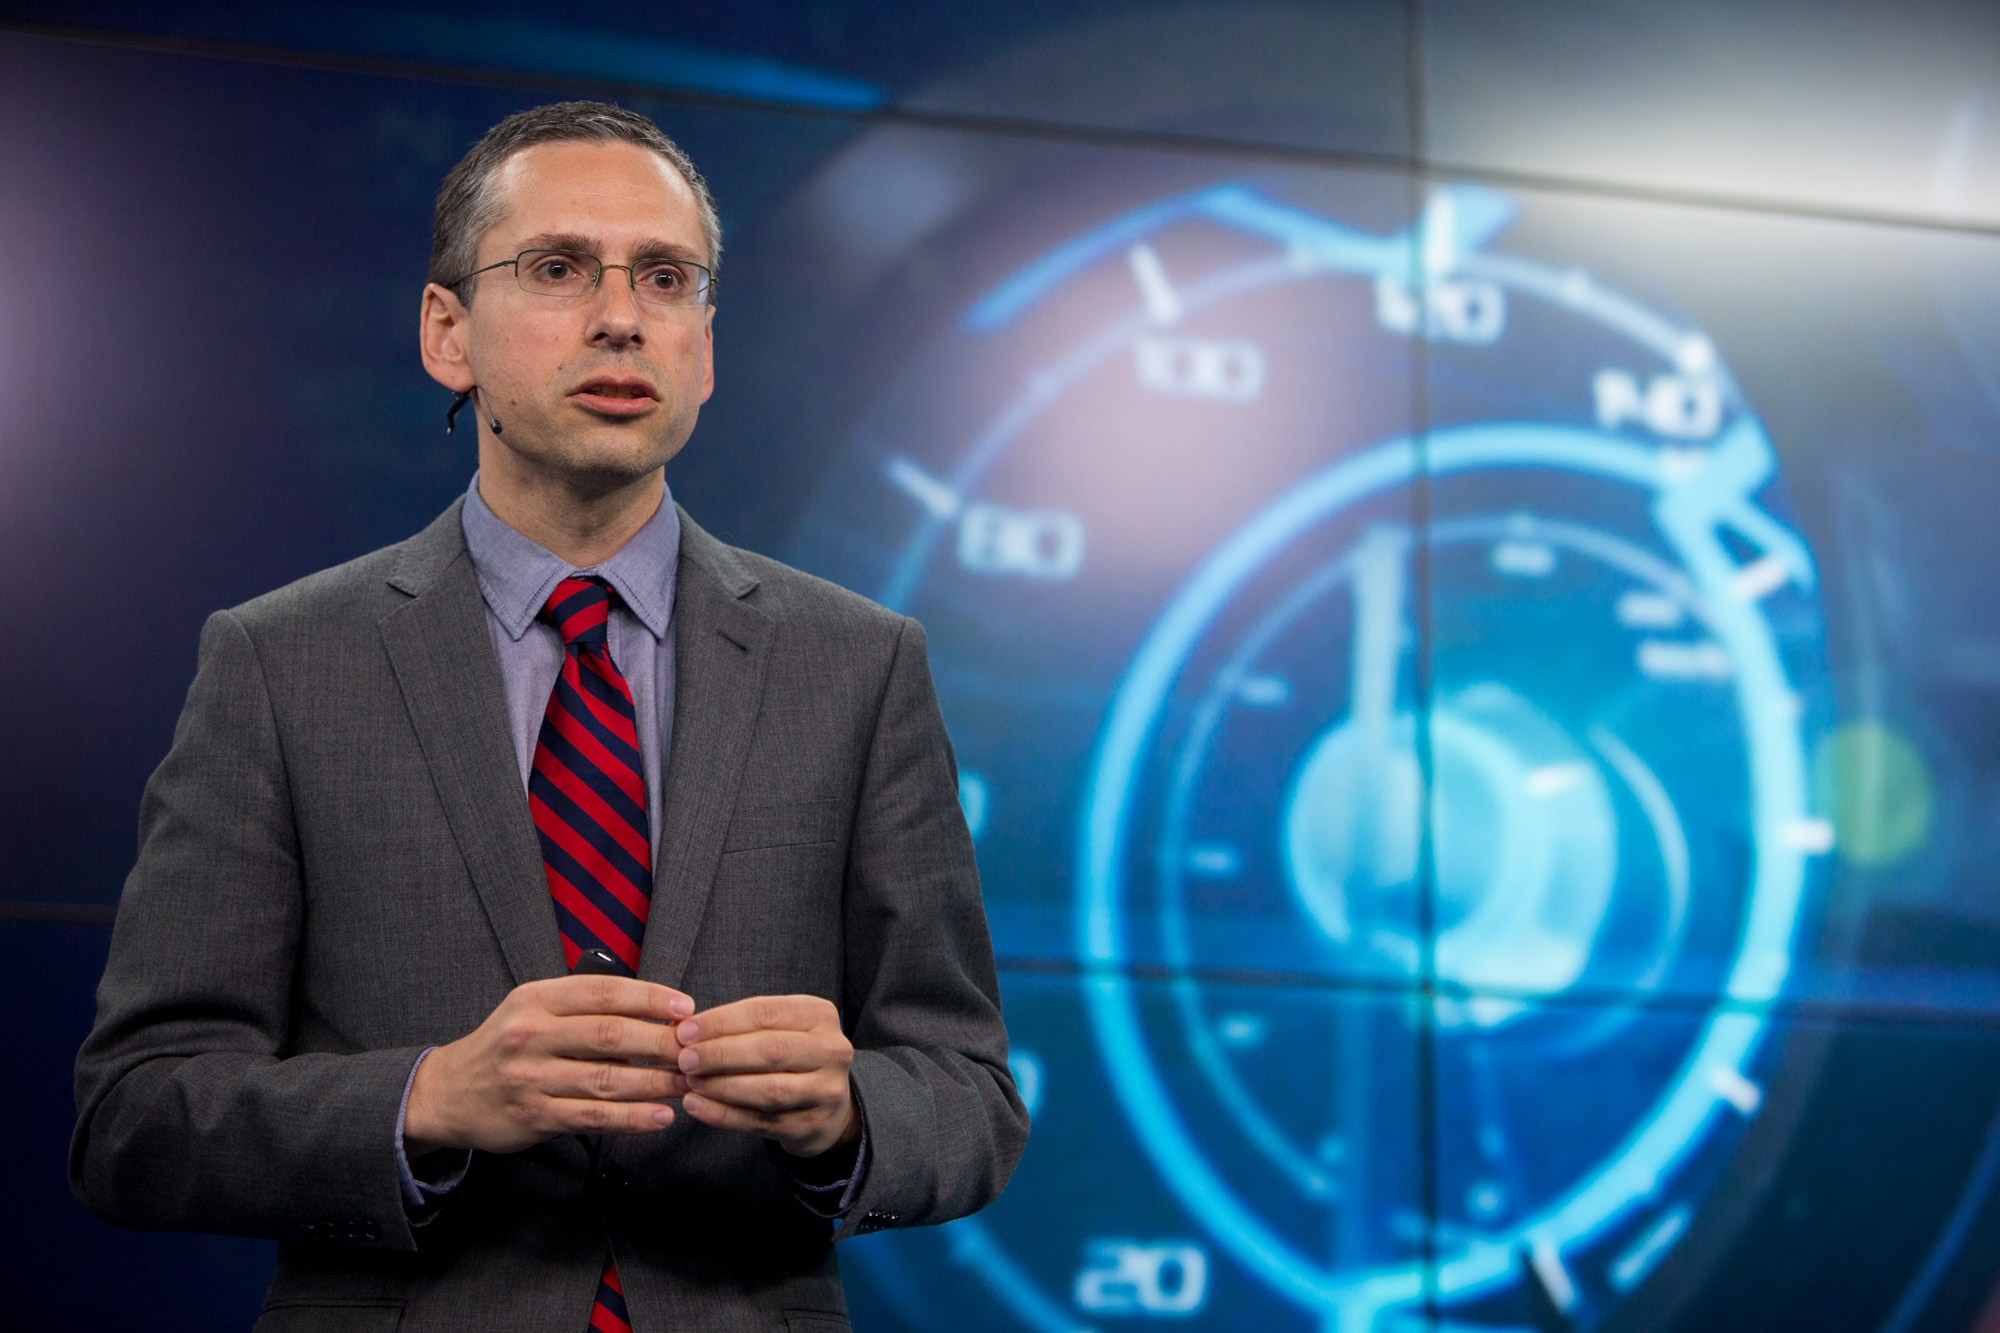 Paul Brody, VP and North America Leader, Mobile and Internet of Things at IBM.